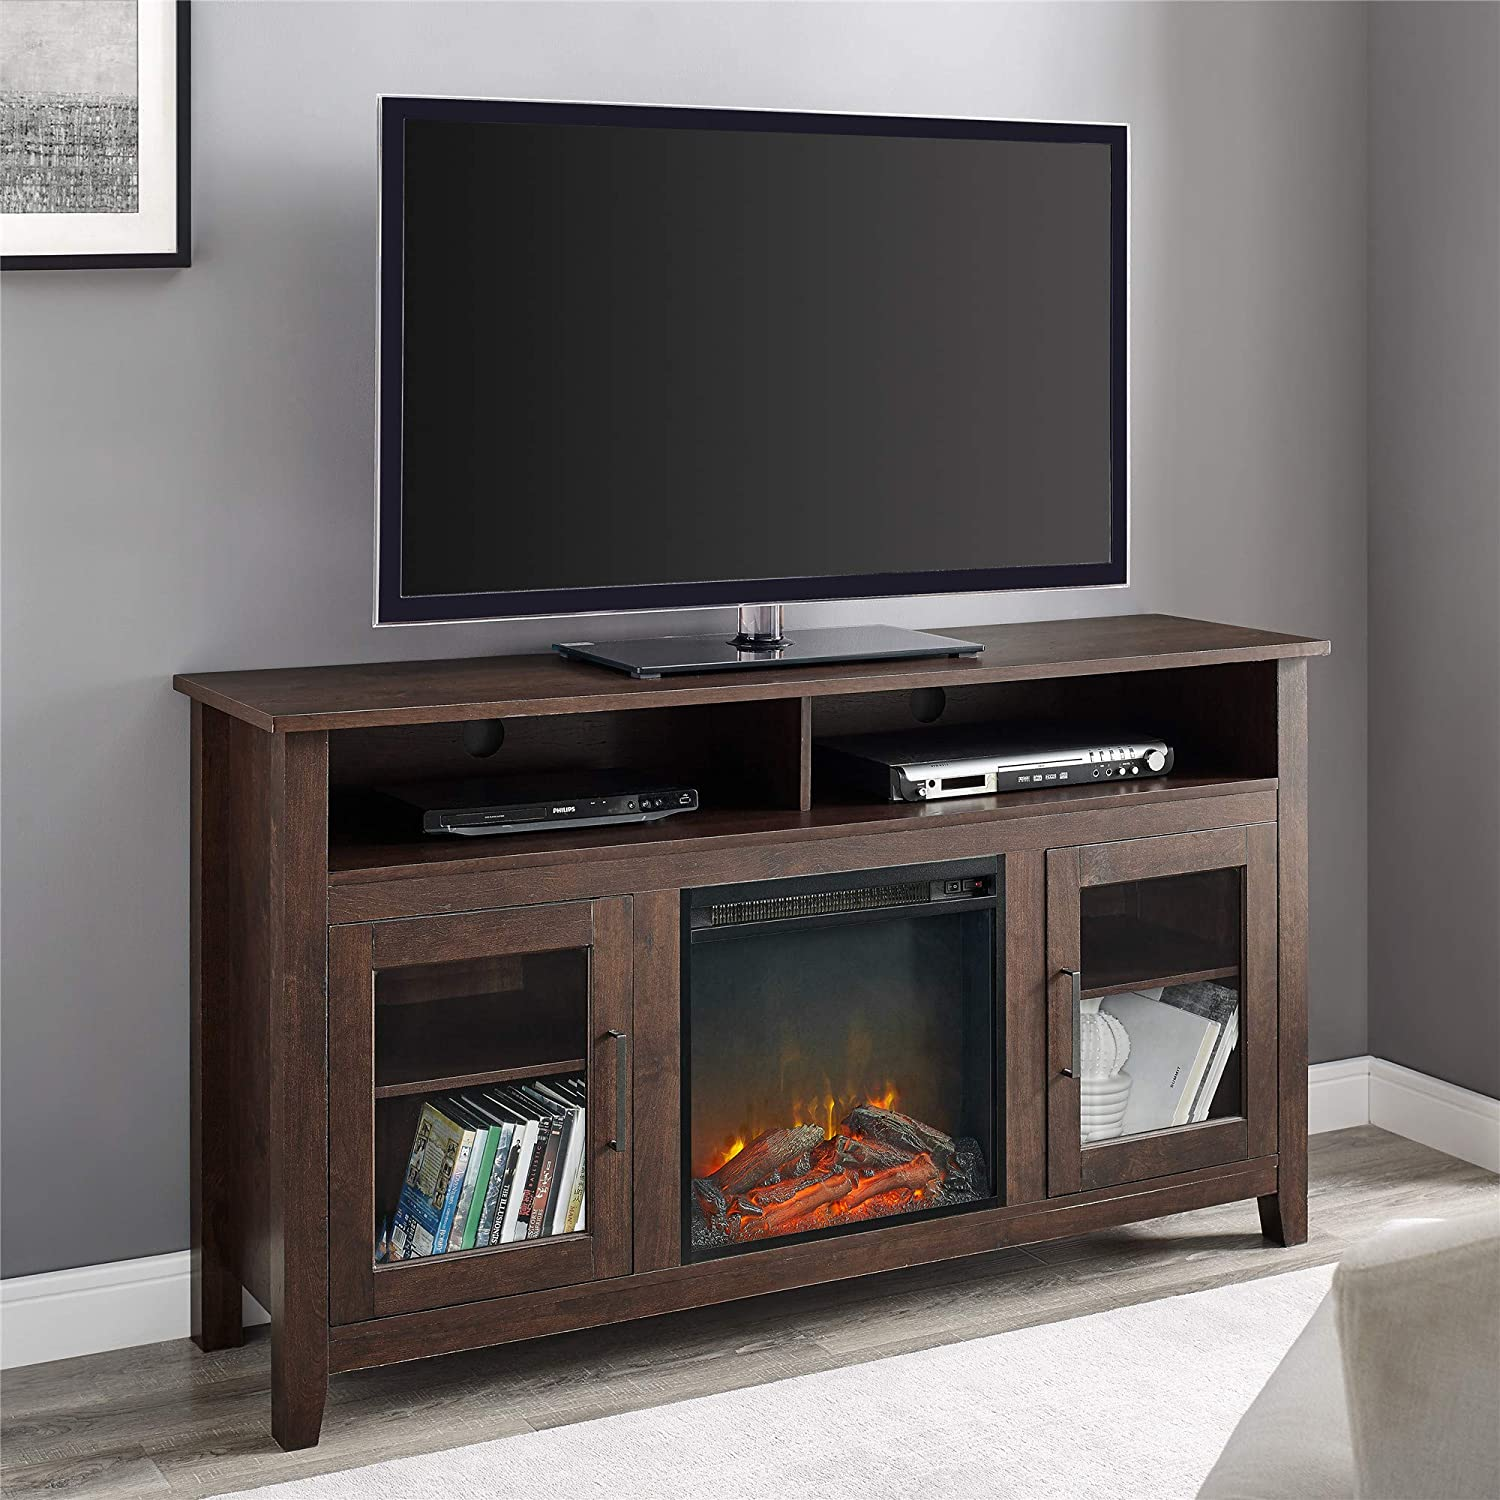 "WE Furniture Tall Rustic Wood Fireplace Stand for TV's up to 64"" Living Room Storage, Brown"